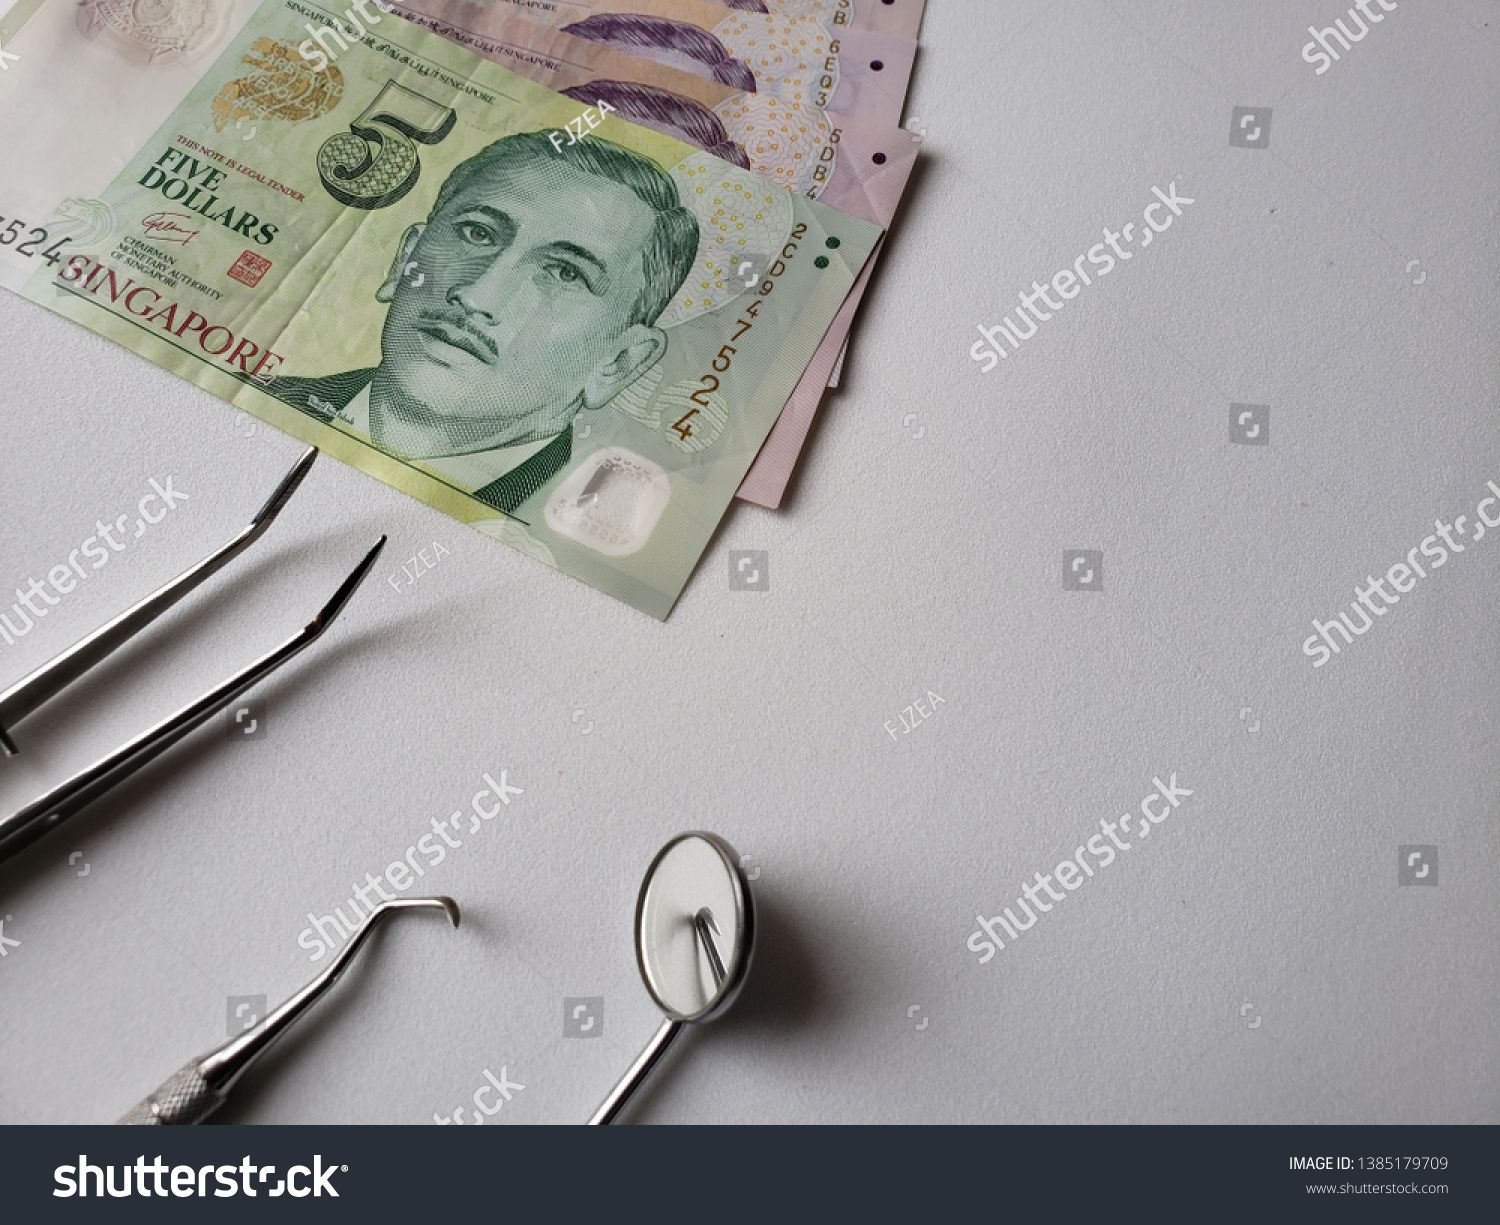 singapore_dollar__dentist_money_dentistry images for your